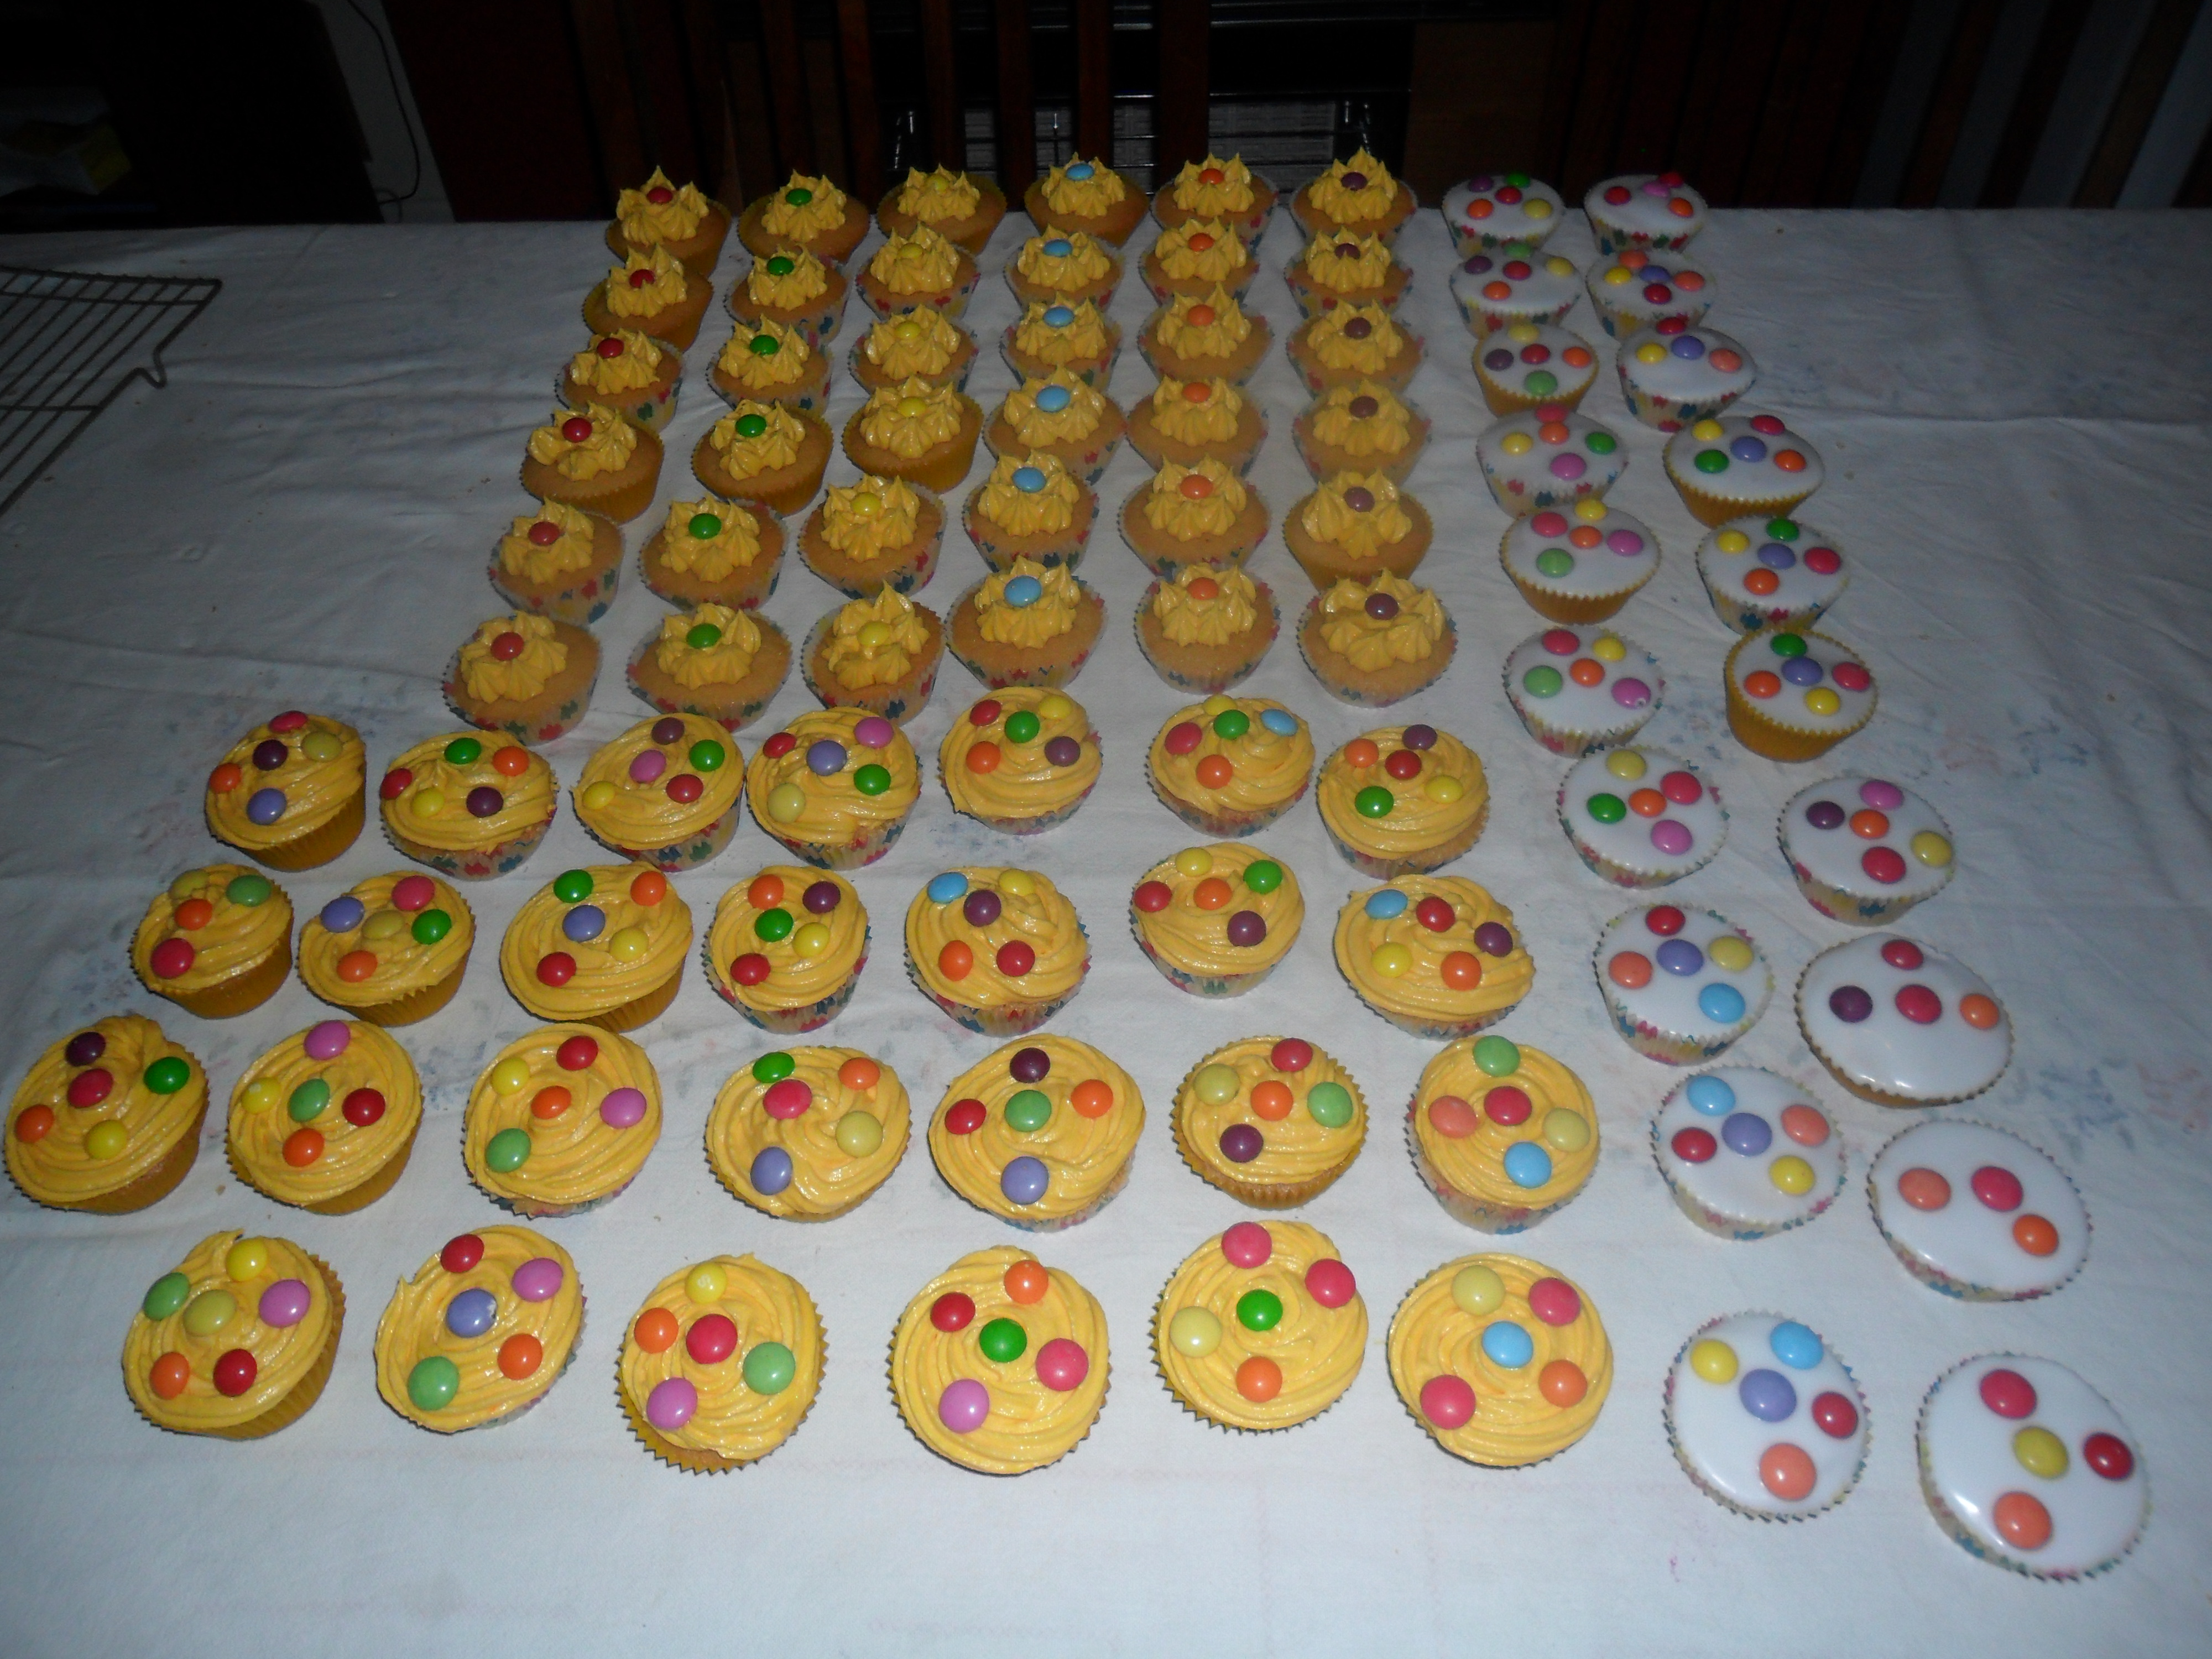 Cupcake Decorations Asda : Decorating Cup Cakes, A Buttercream Frosting Recipe, And ...